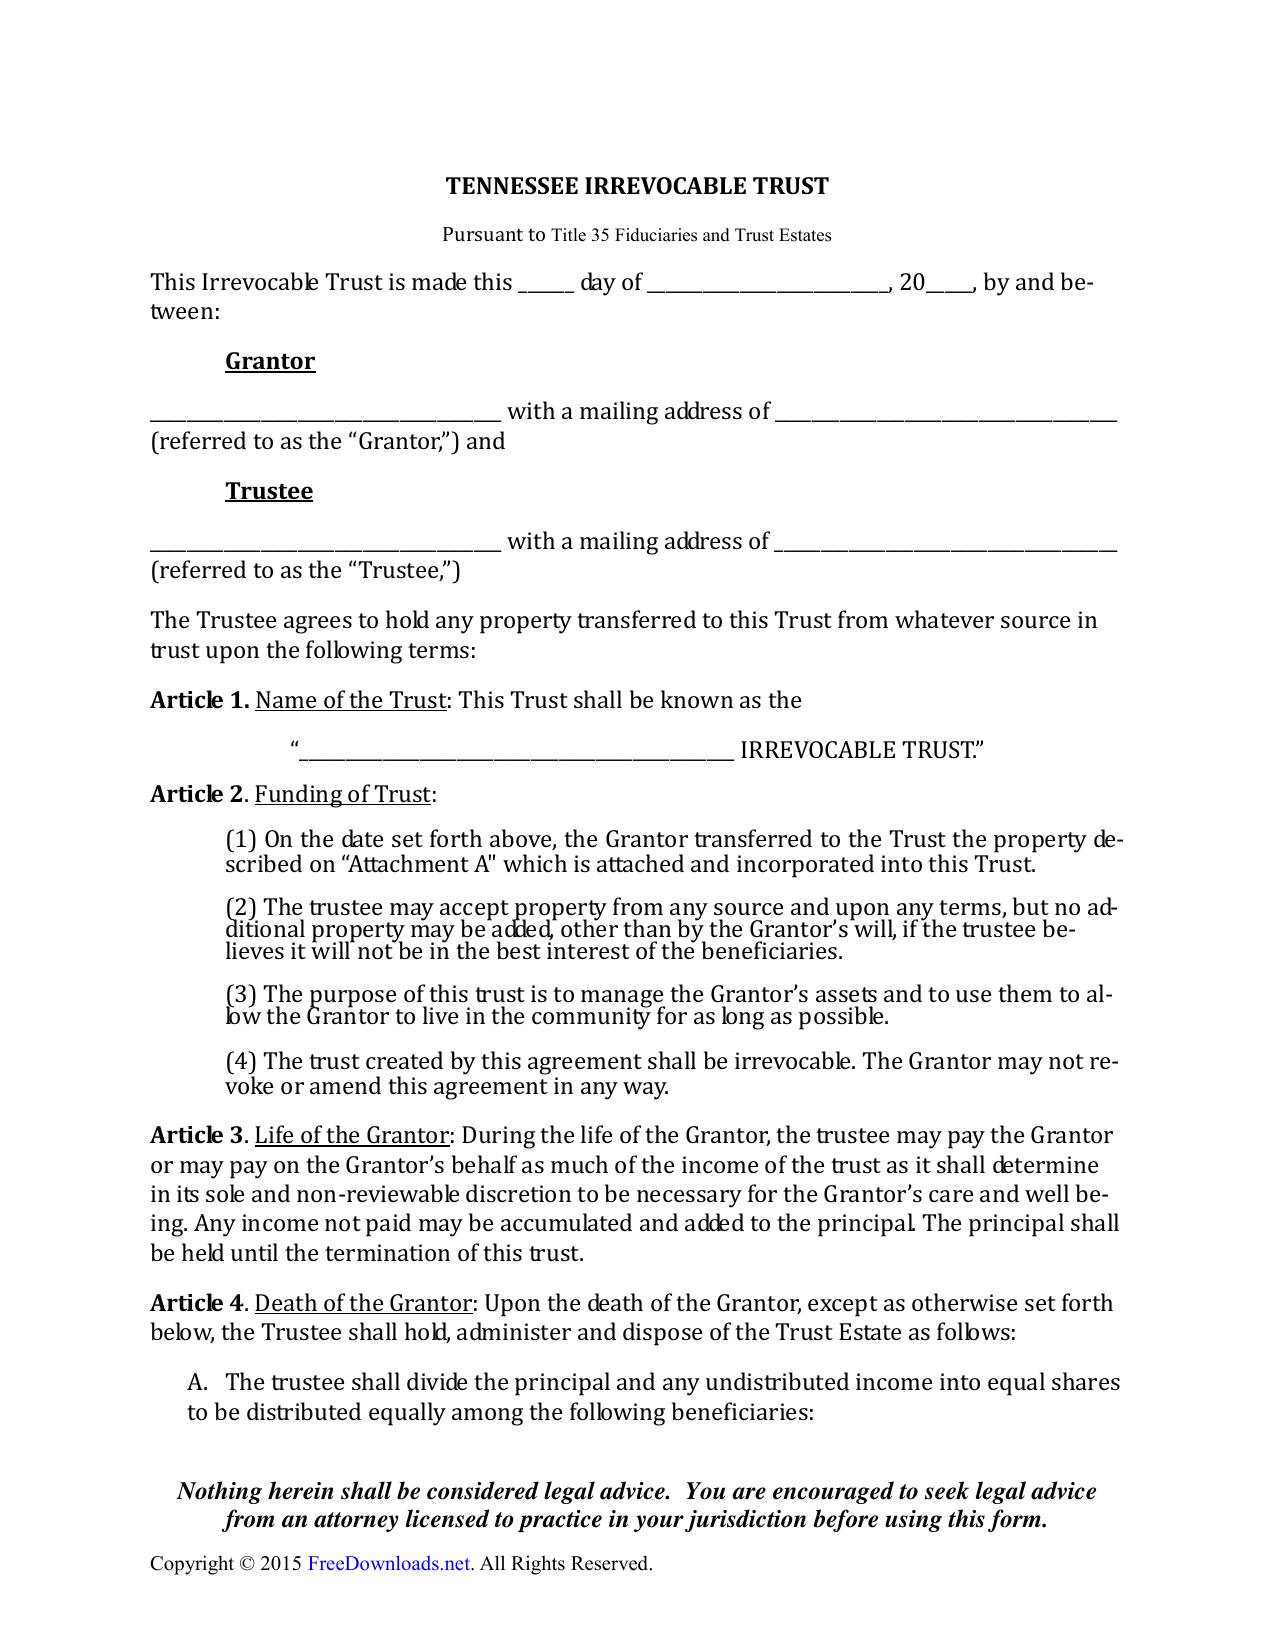 Irrevocable Trust Template Tennessee